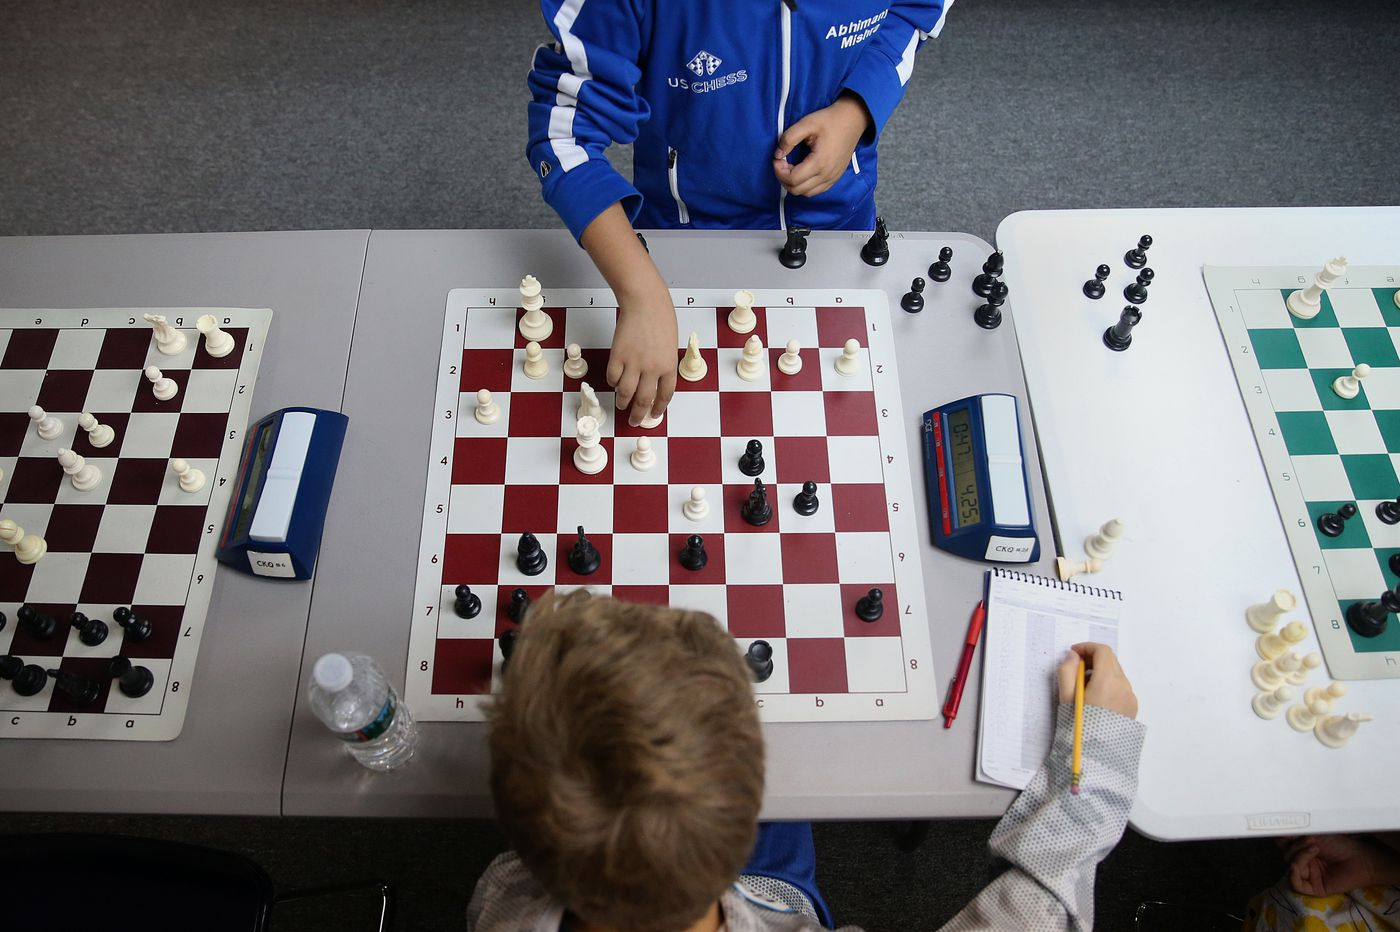 Checkmate! New Jersey boy knighted as youngest U.S. chess master